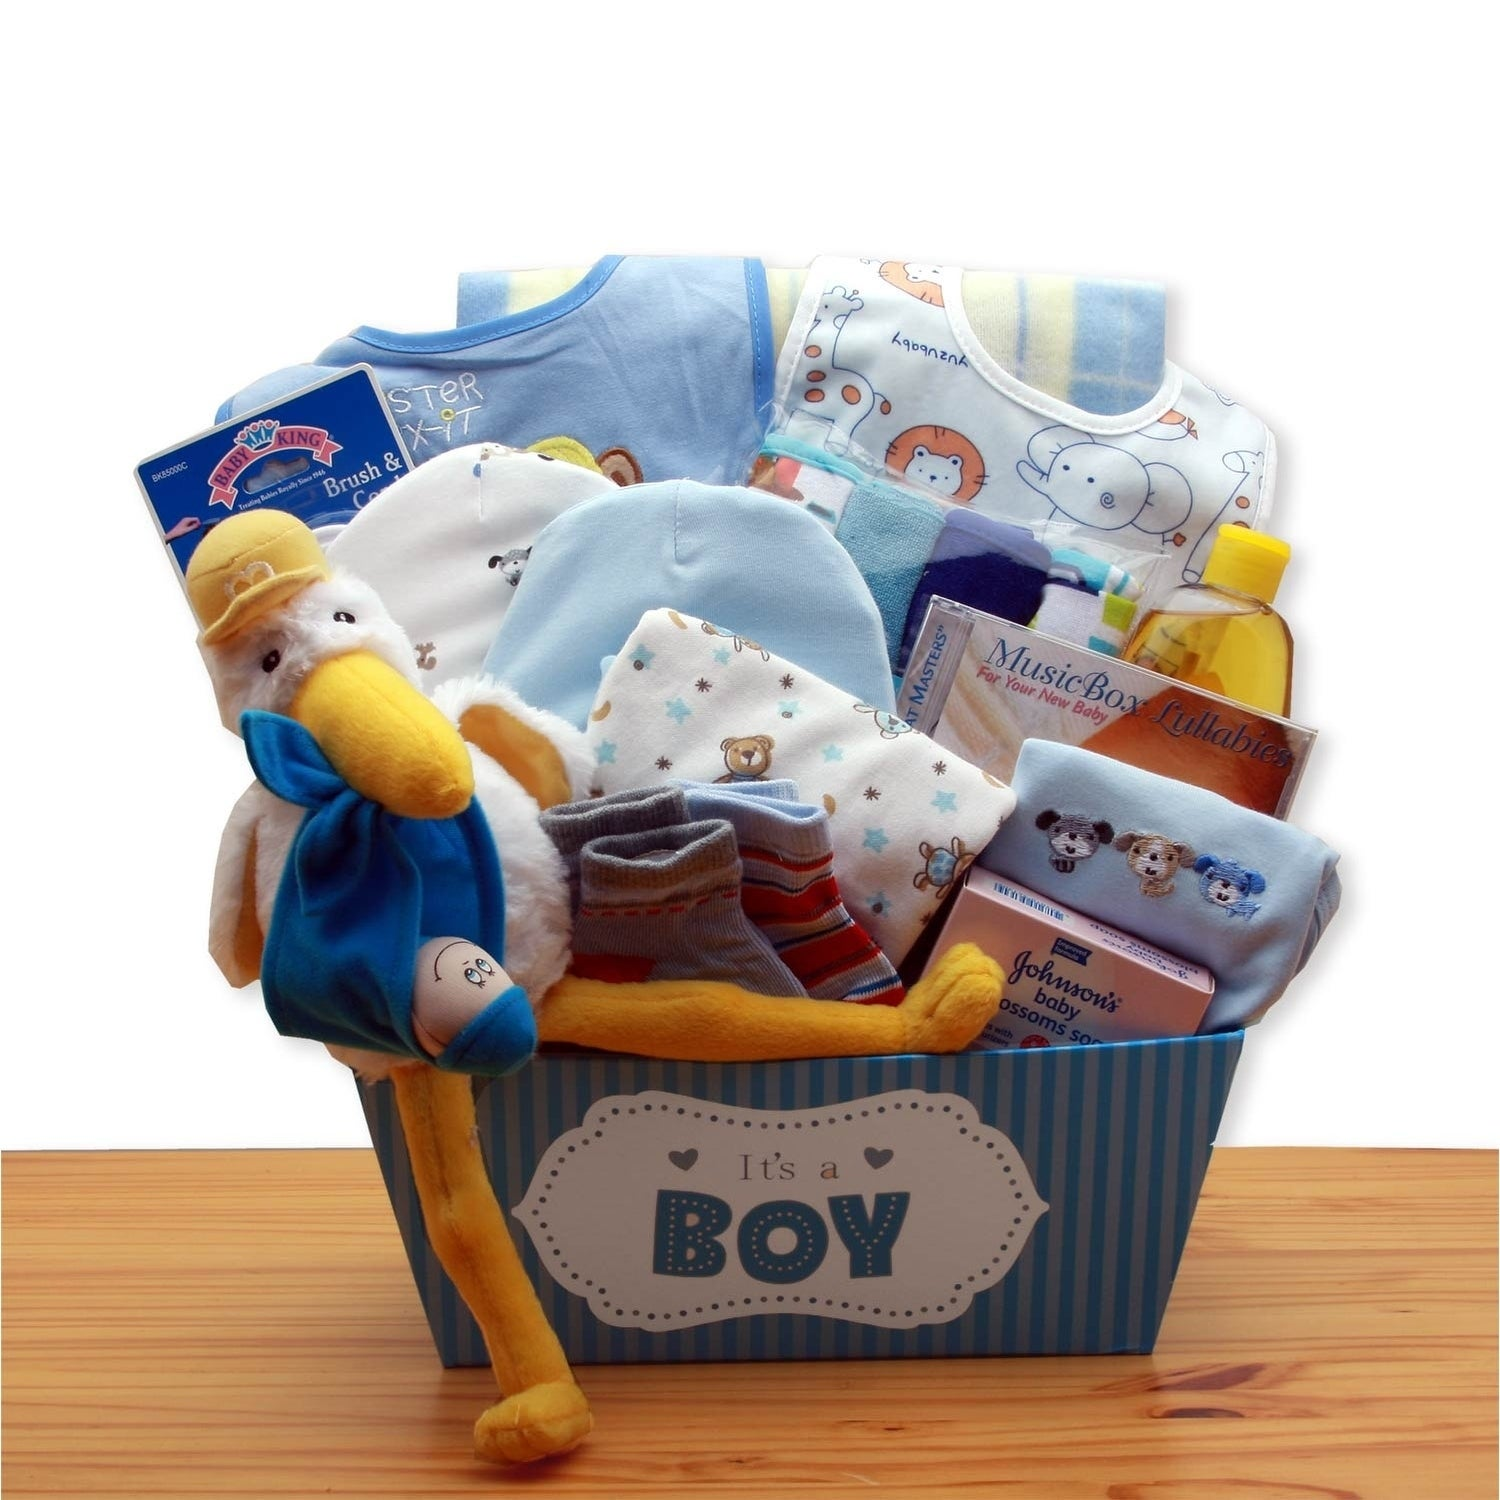 Shop A Special Delivery New Baby Gift Basket - Blue - Free Shipping Today - Overstock - 23505709  sc 1 st  Overstock.com & Shop A Special Delivery New Baby Gift Basket - Blue - Free Shipping ...